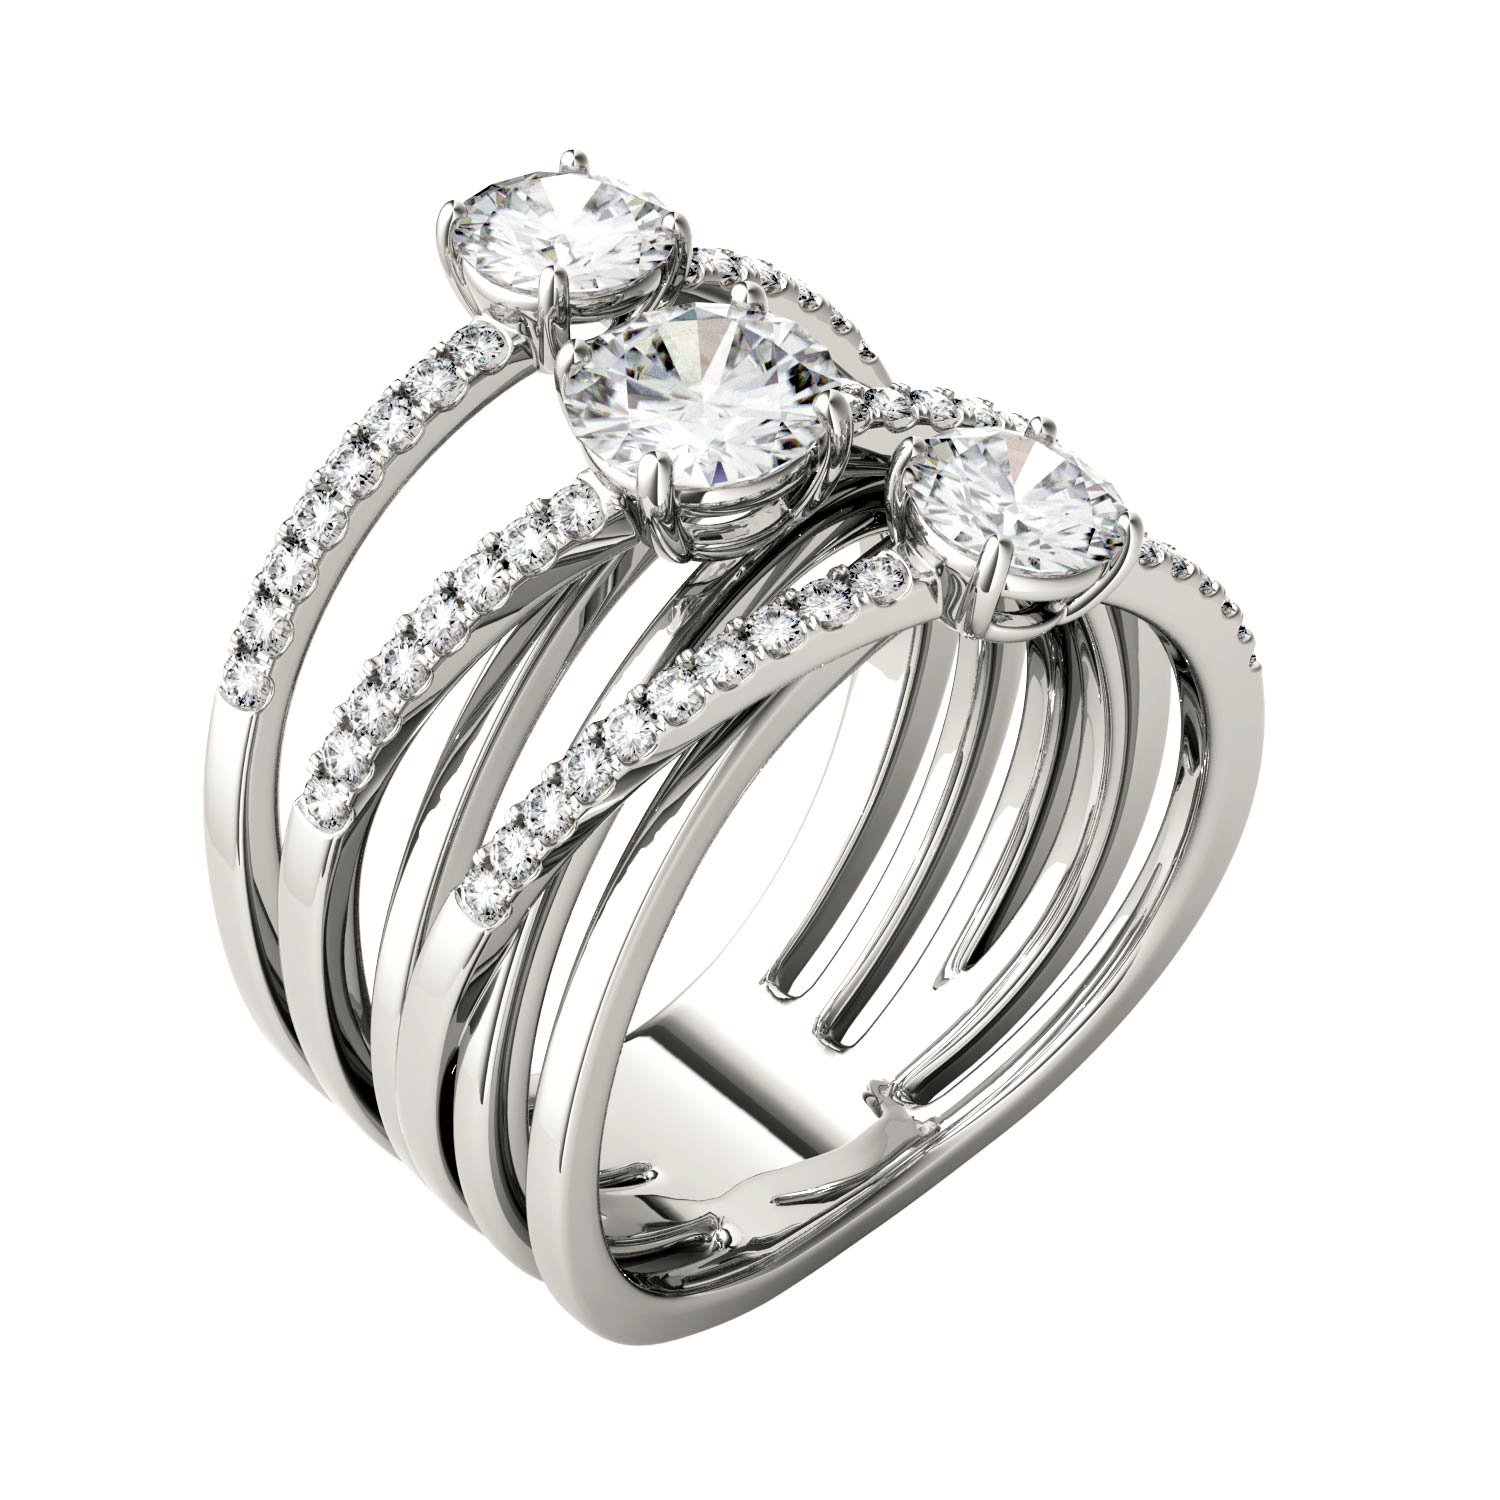 Forever Brilliant Round 6.0mm Moissanite Band Style Ring-size 6, 2.28cttw DEW By Charles & Colvard by Charles & Colvard (Image #2)